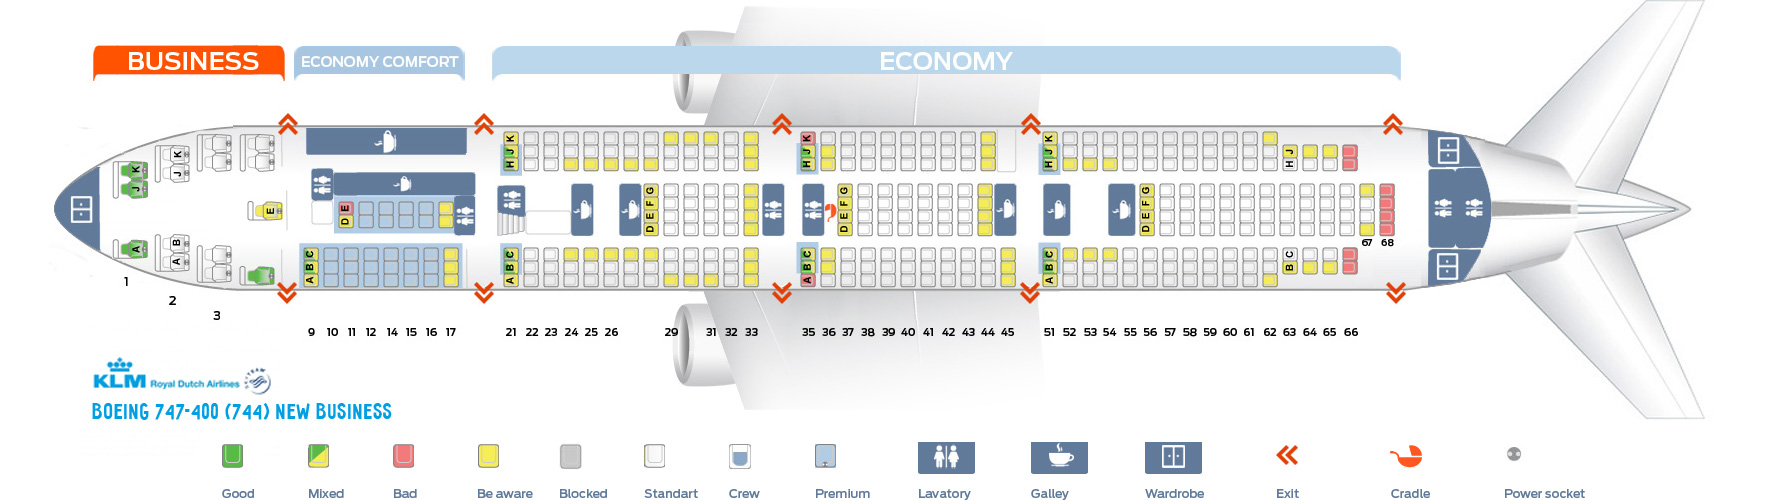 747 400 Seat Map 747 400 Seat Map | Bedroom 2018